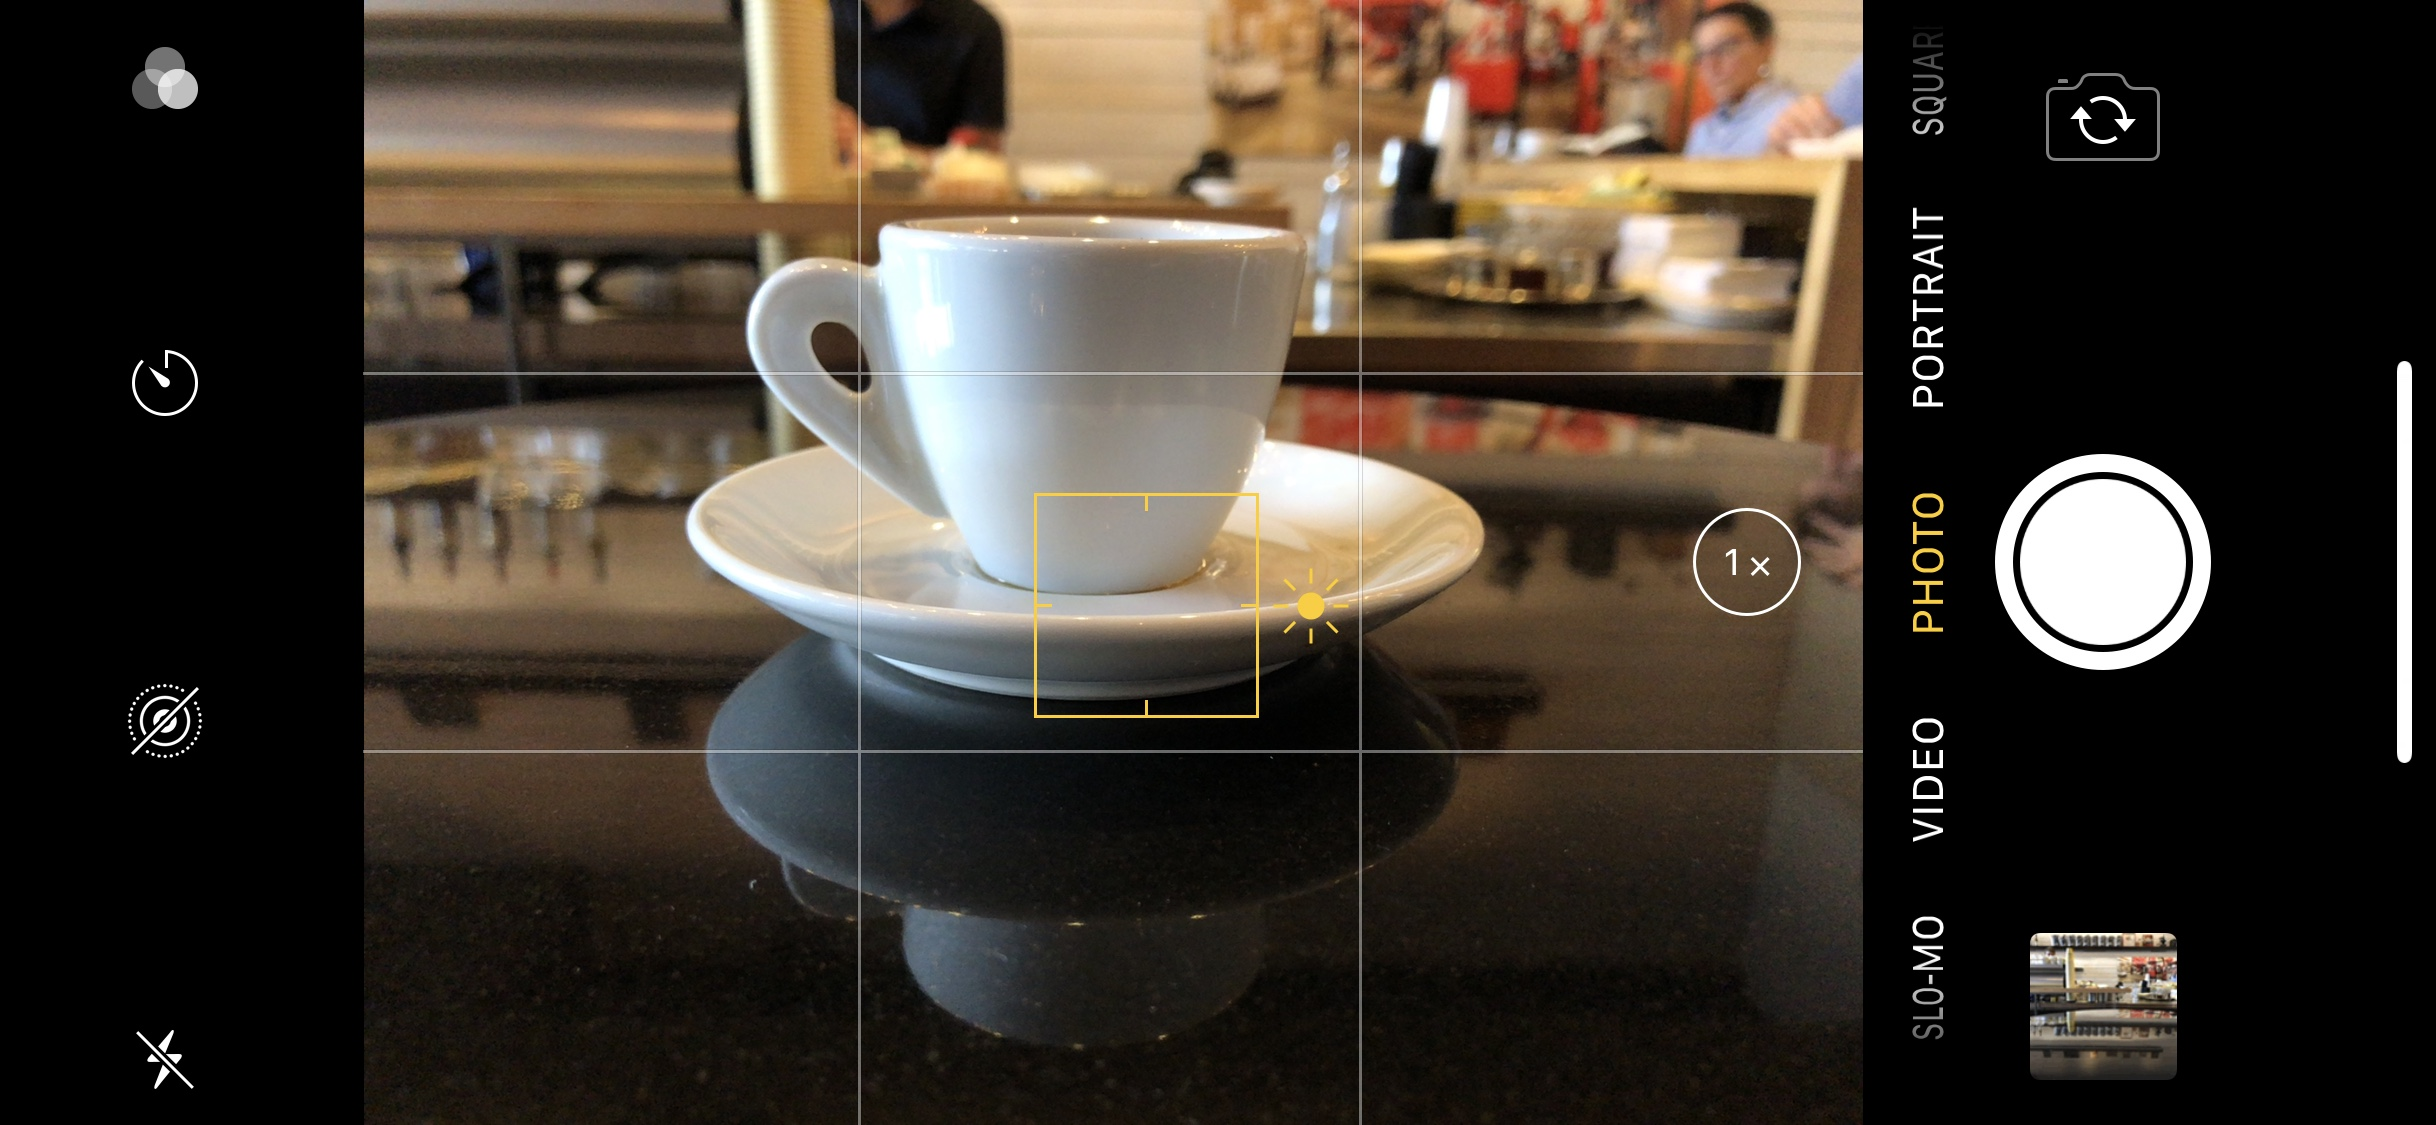 Tap to focus reveals an exposure compensation control at right.